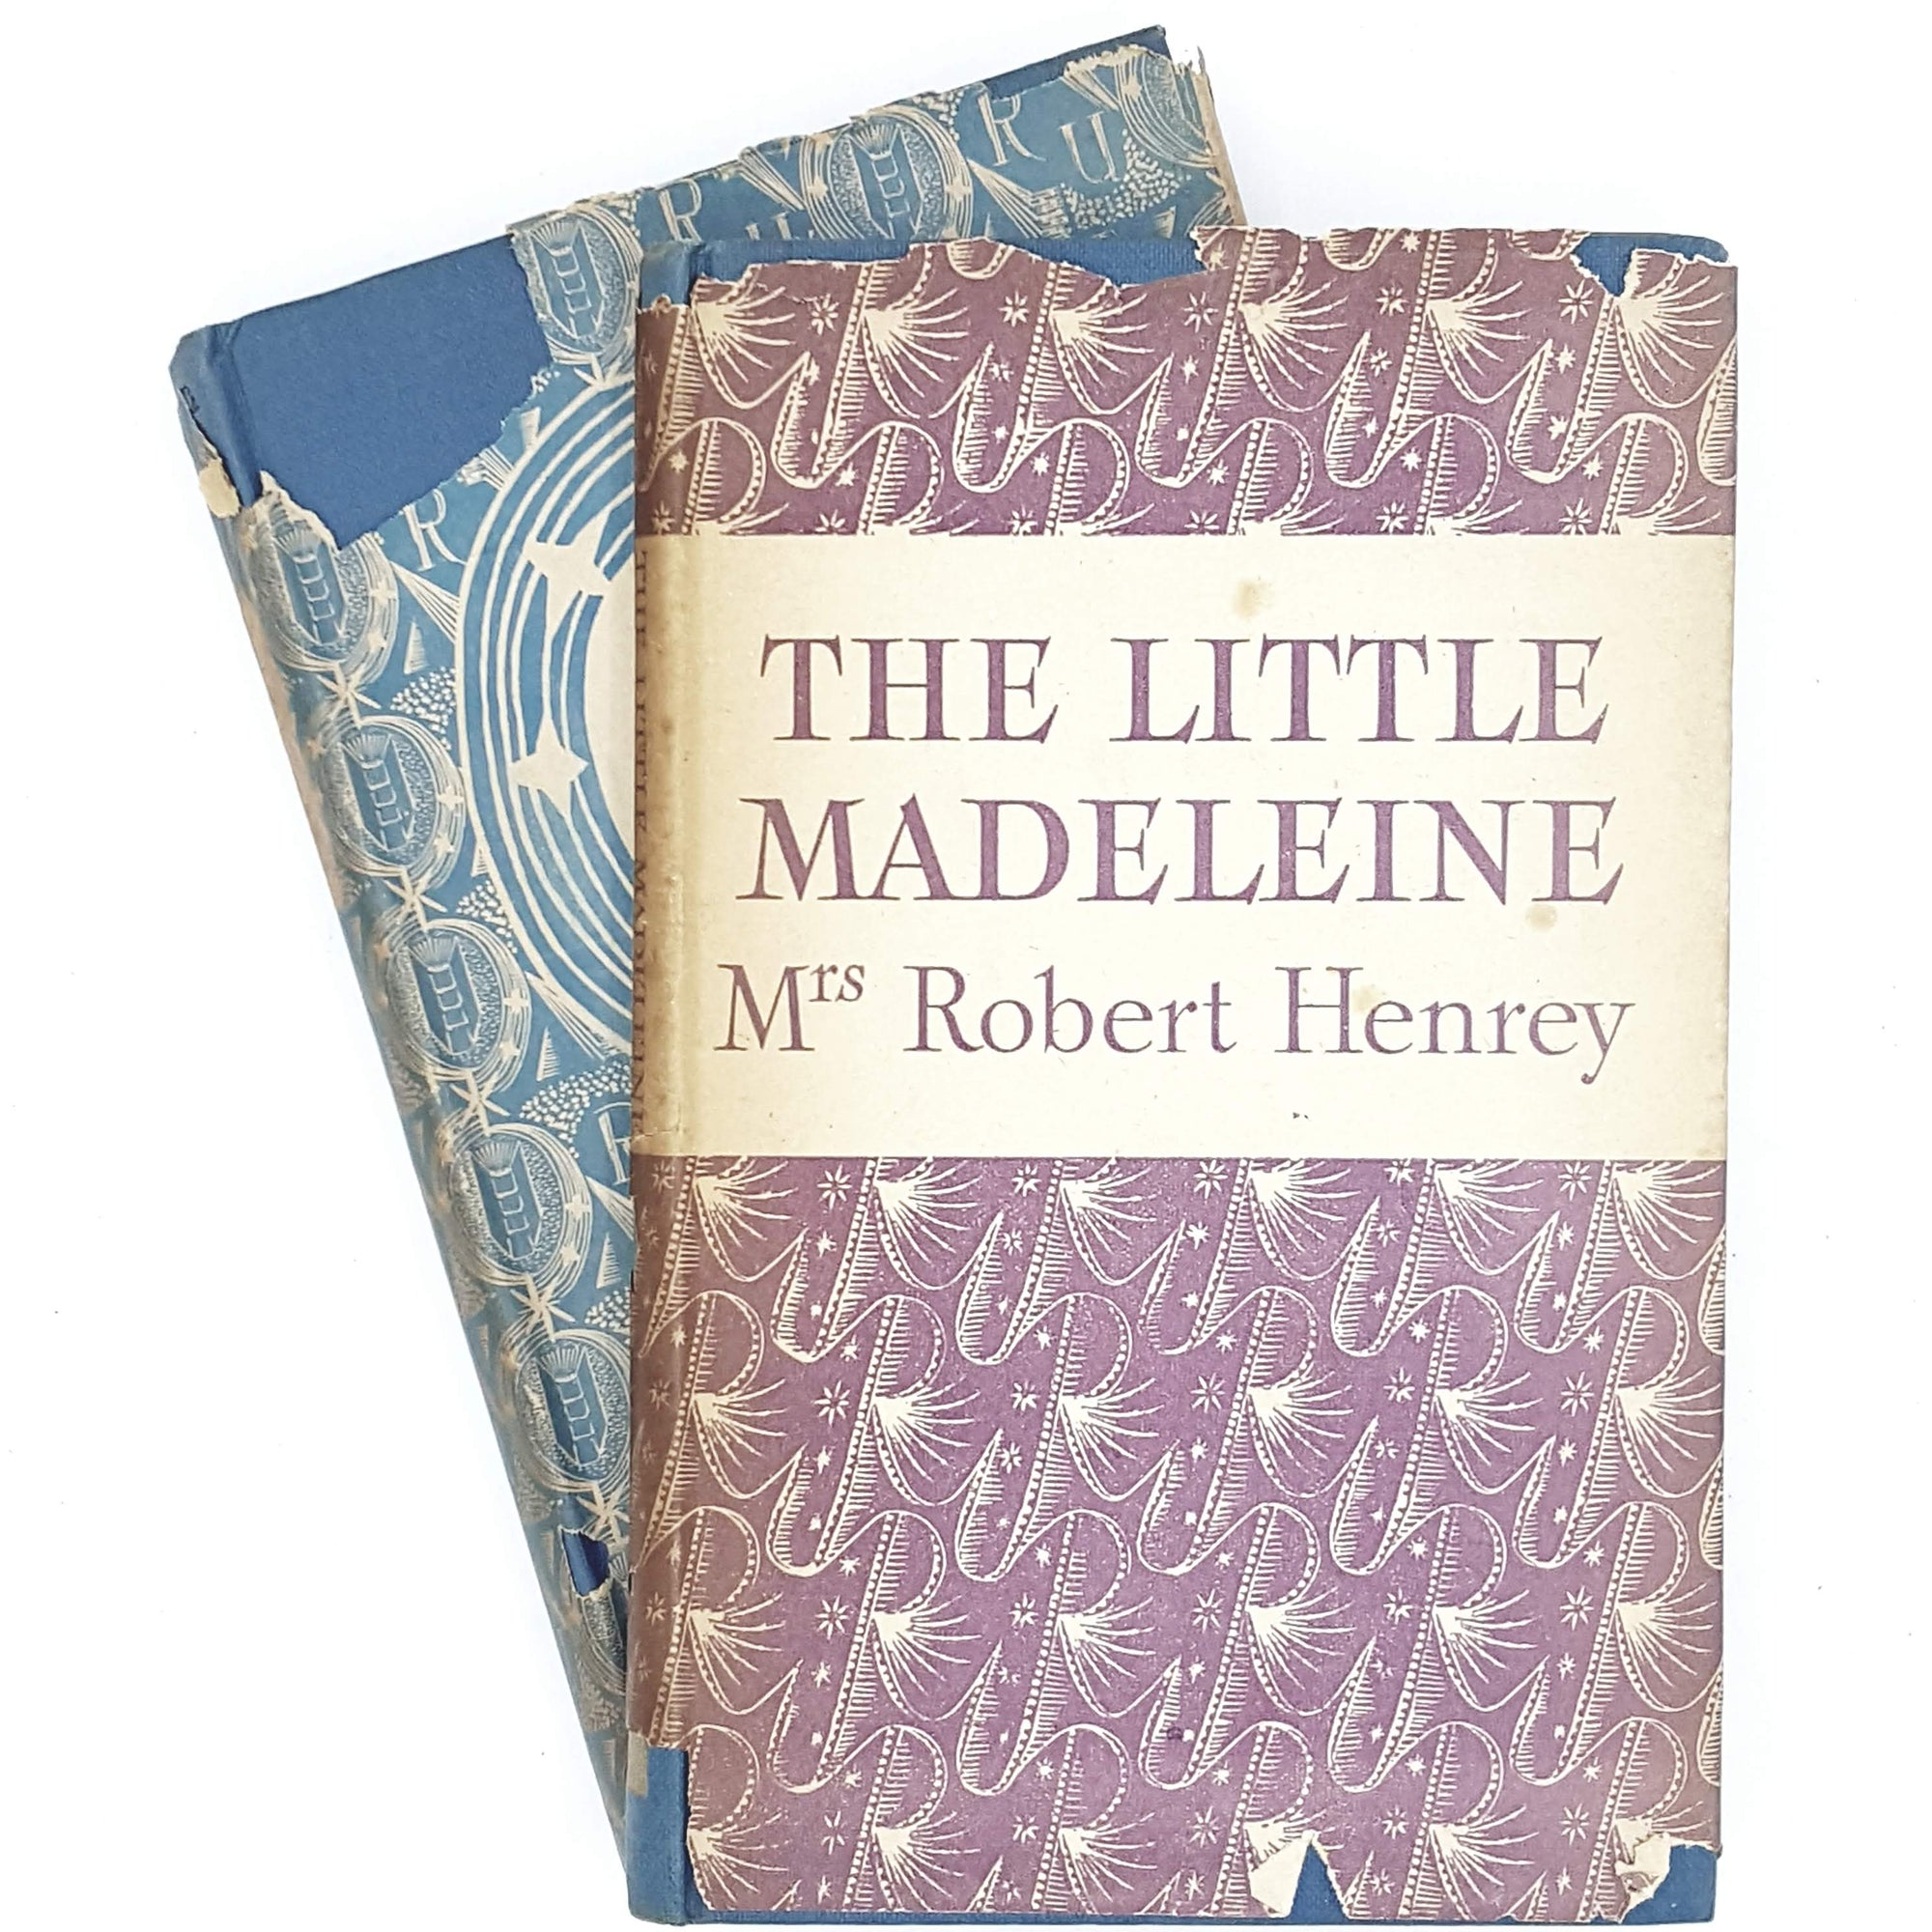 Collection Mrs Robert Henrey's Madeline 1952 - 1954